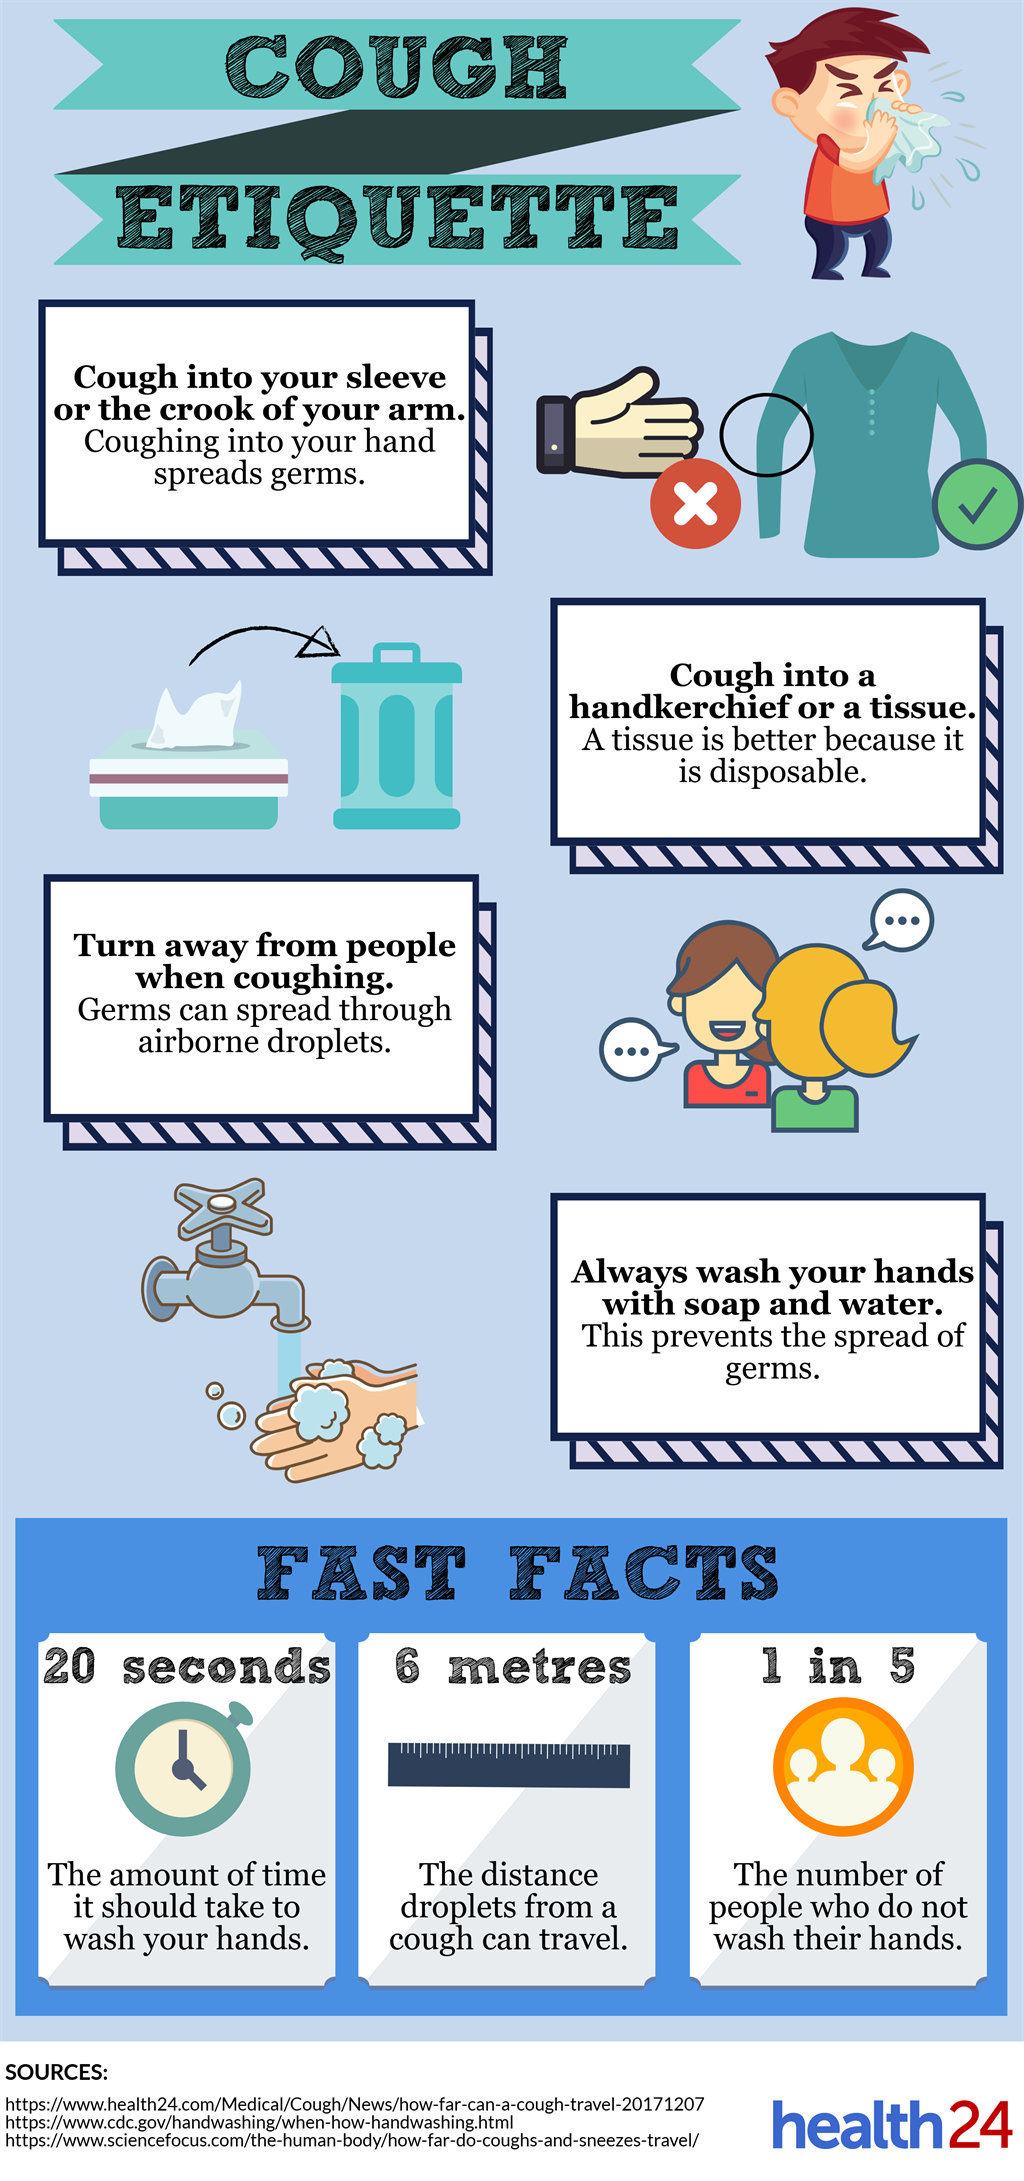 A cough infographic detailing how you should cough